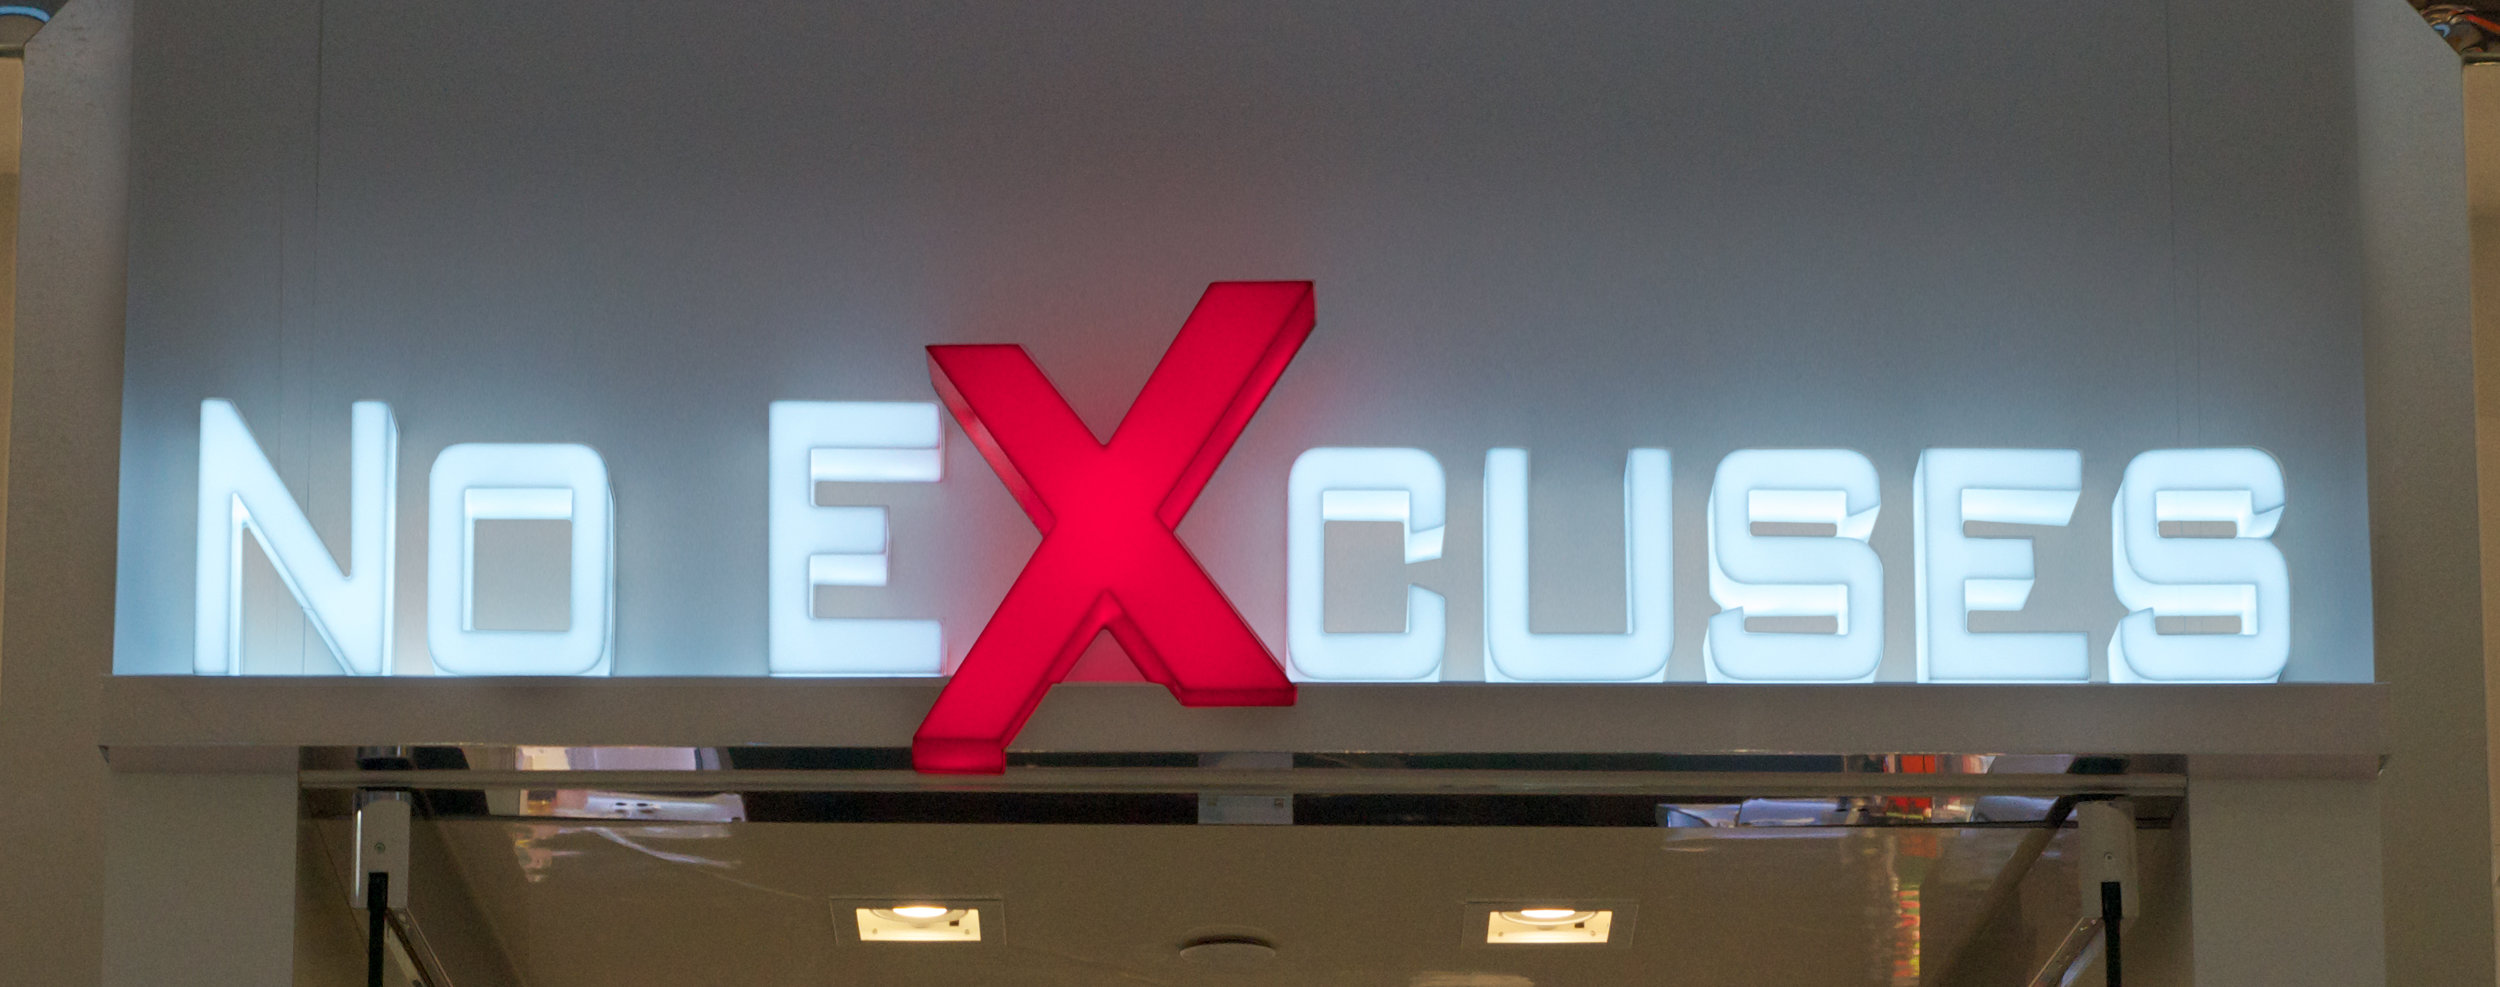 No Excuses - 1 sign.jpg